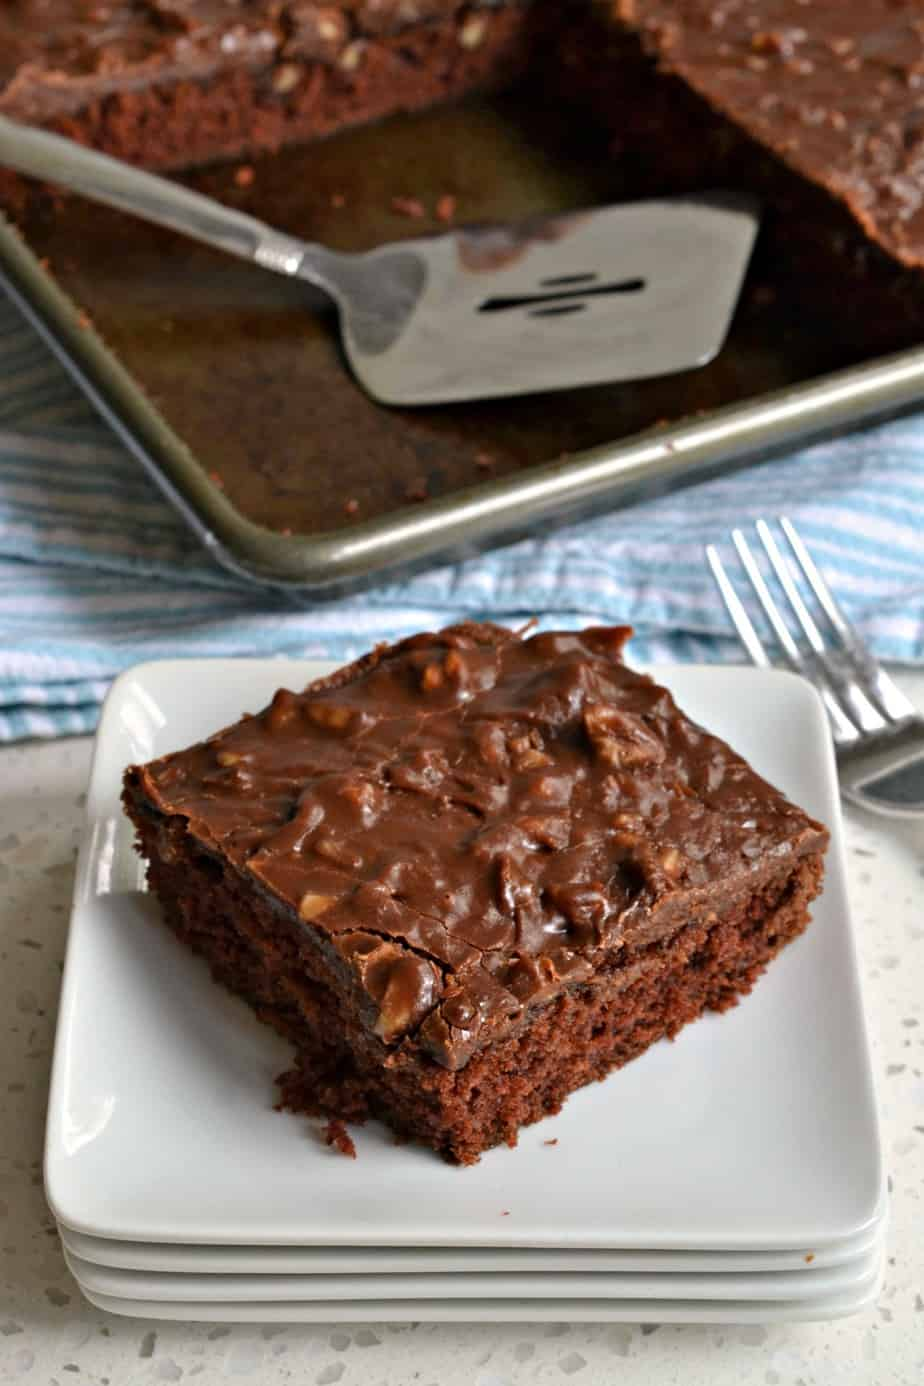 An easy moist chocolate cake baked in a jelly roll pan and topped with a luscious chocolate fudge frosting.